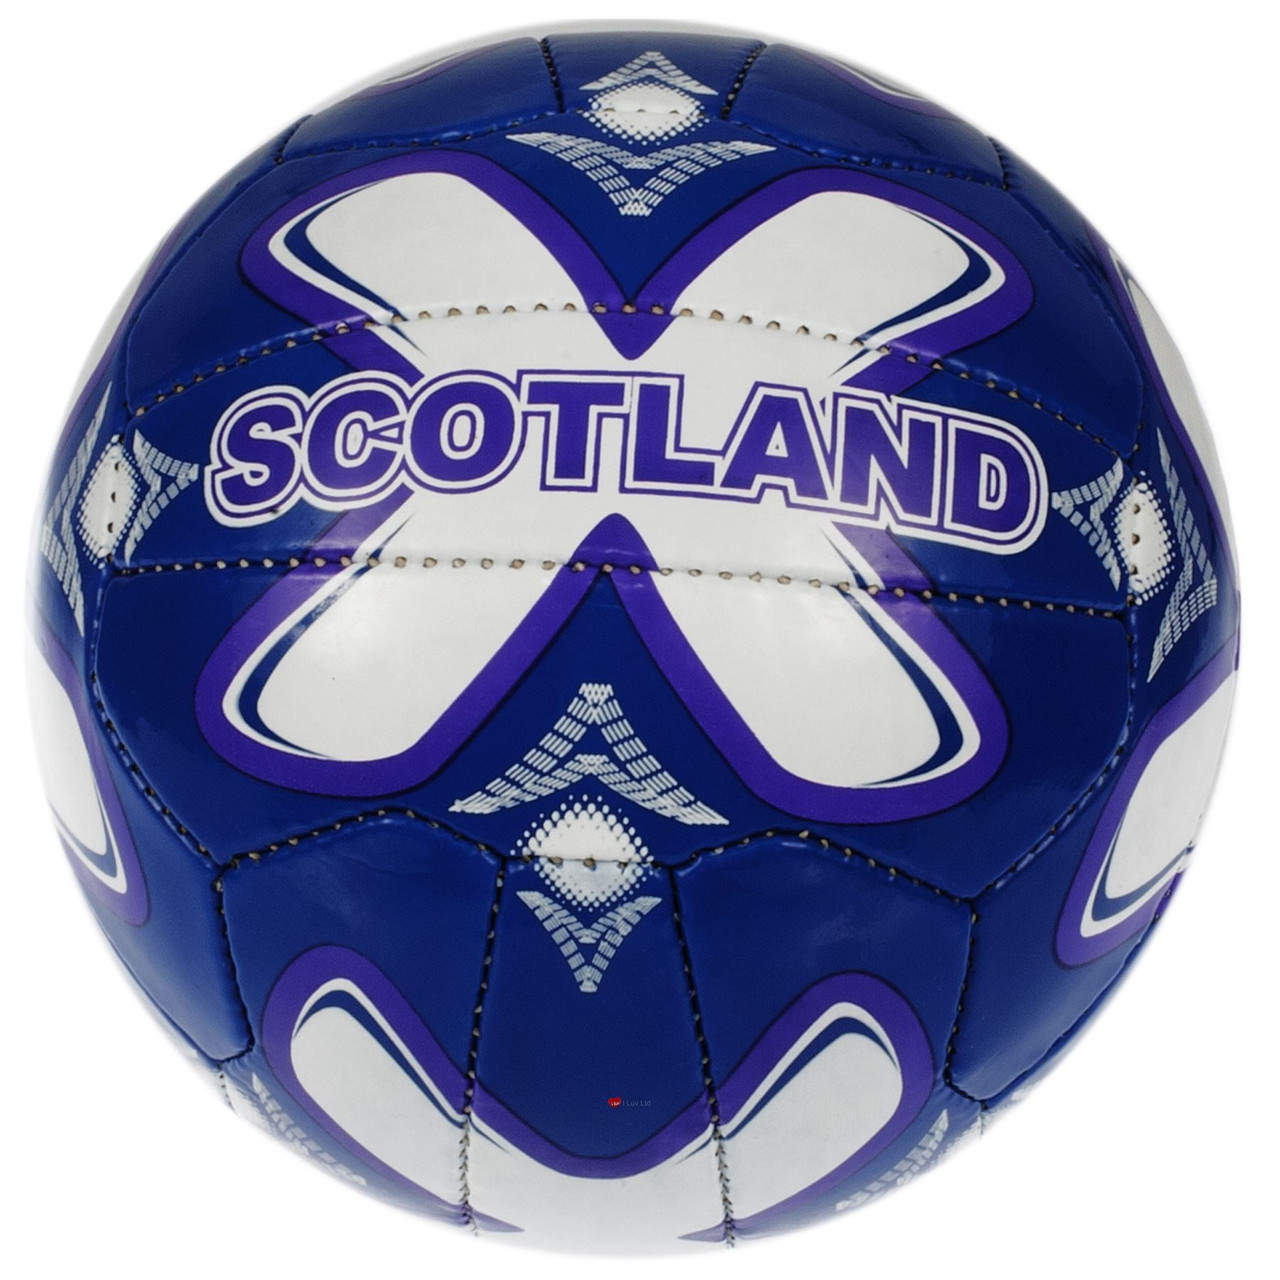 fa4aa7f2732 Adult Soccer Full Size Scotland Large Football Blue Purple White ...